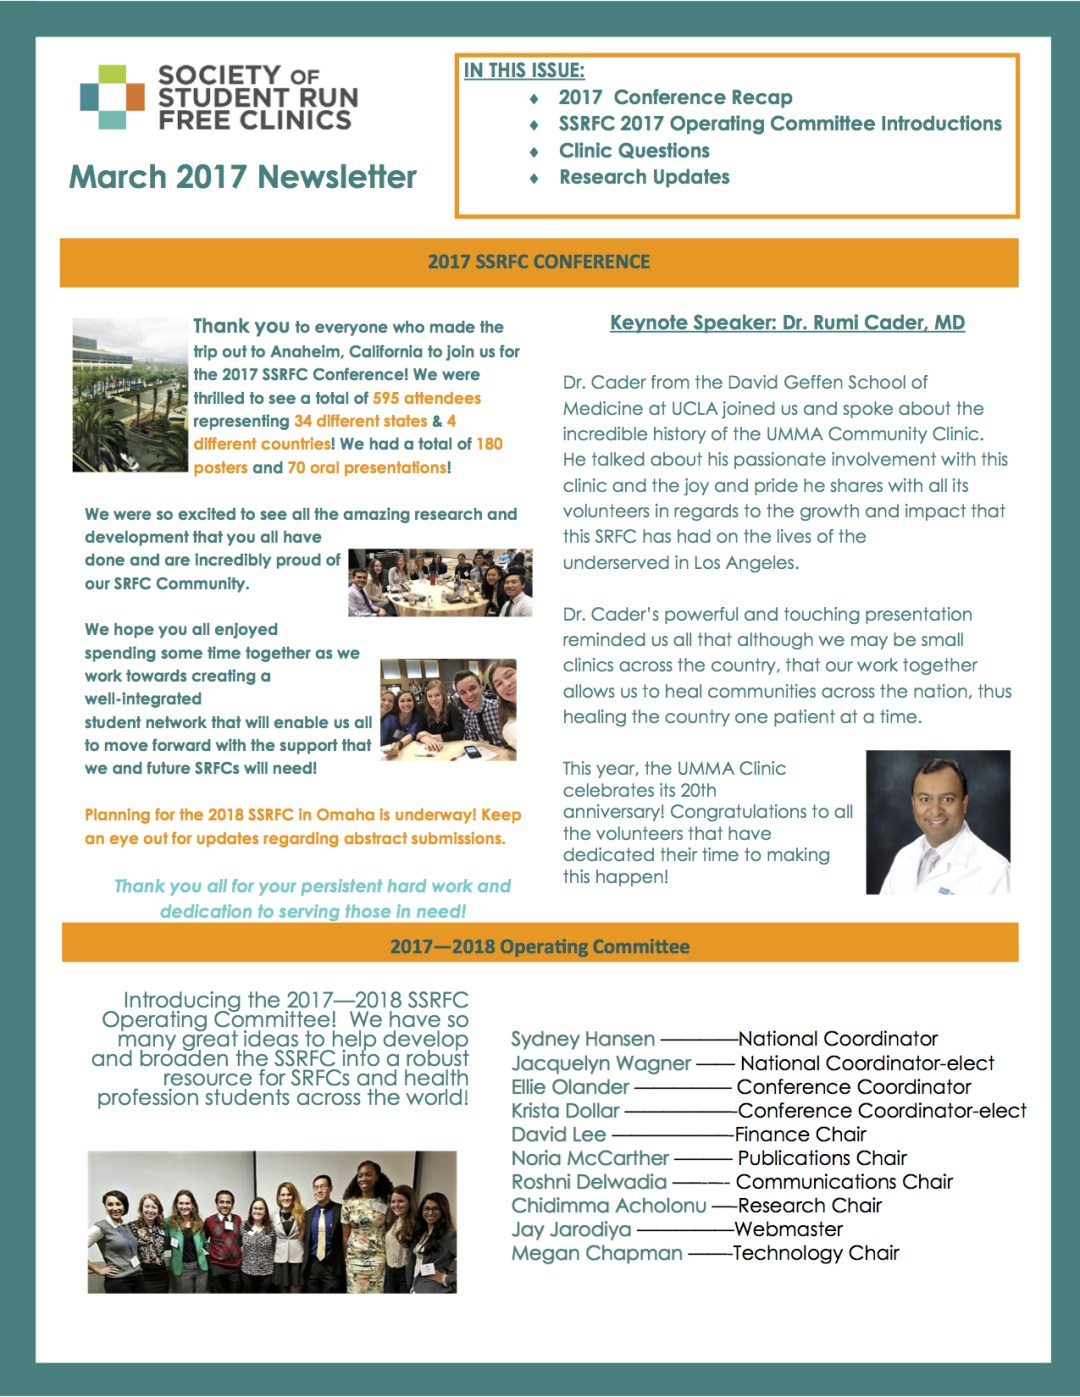 march 2017 newsletter society of student run free clinics